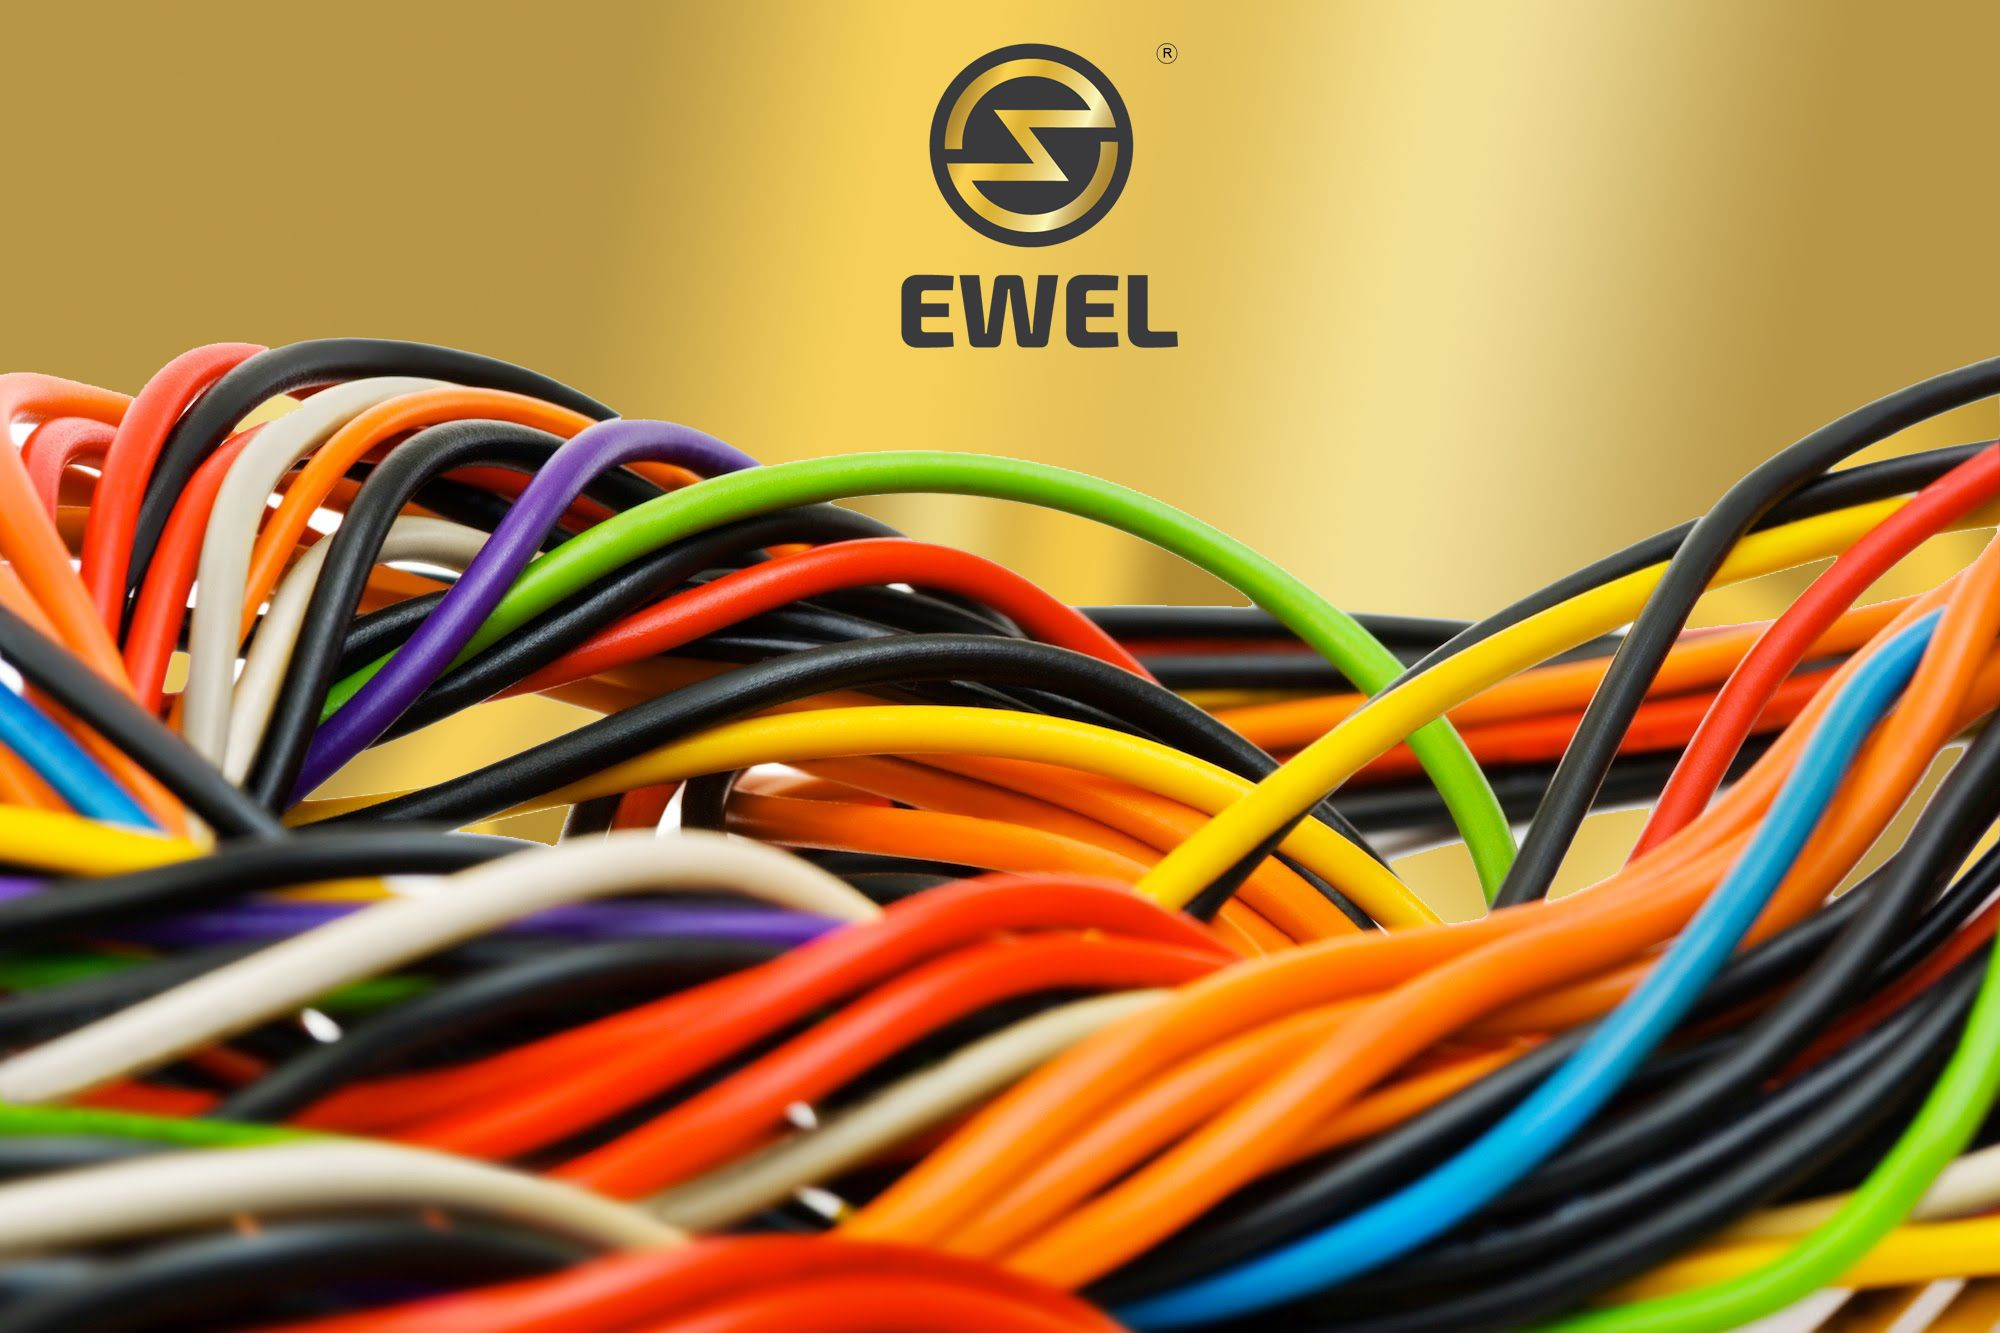 hight resolution of which is the best industrial wire products manufacturing company in india best wires and cables